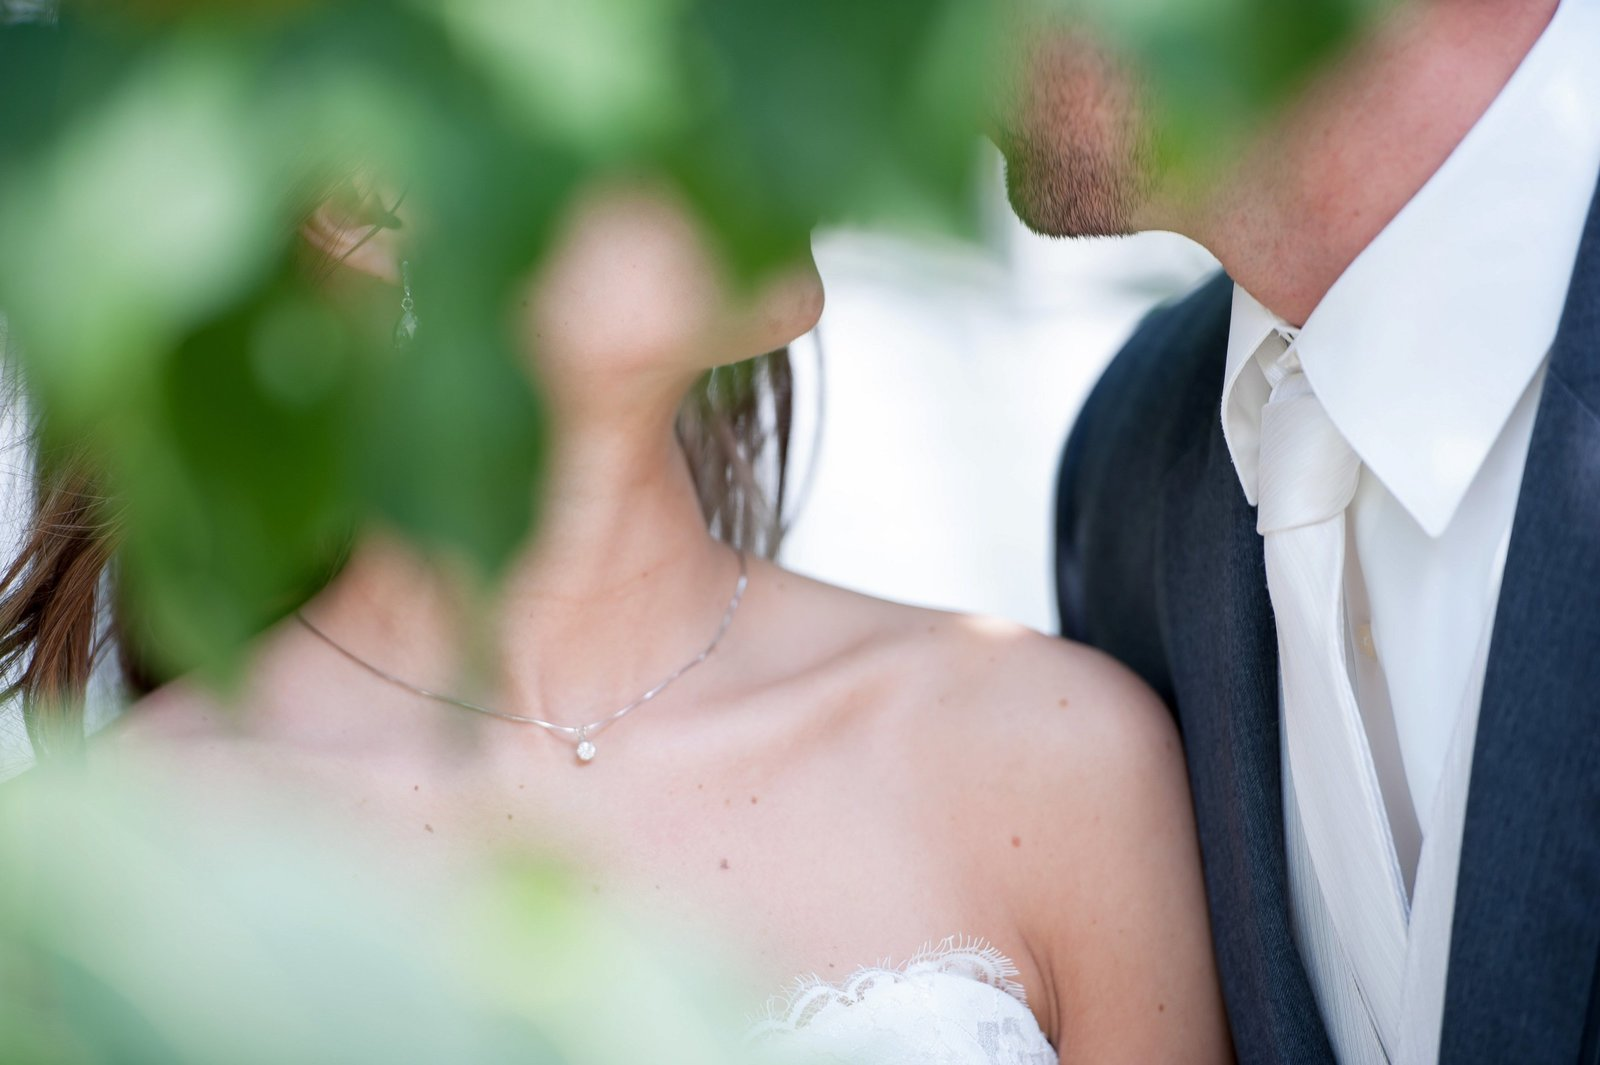 Details at a wedding in Grand Forks photographed by Kris kandel. Beautiful intimate moments.